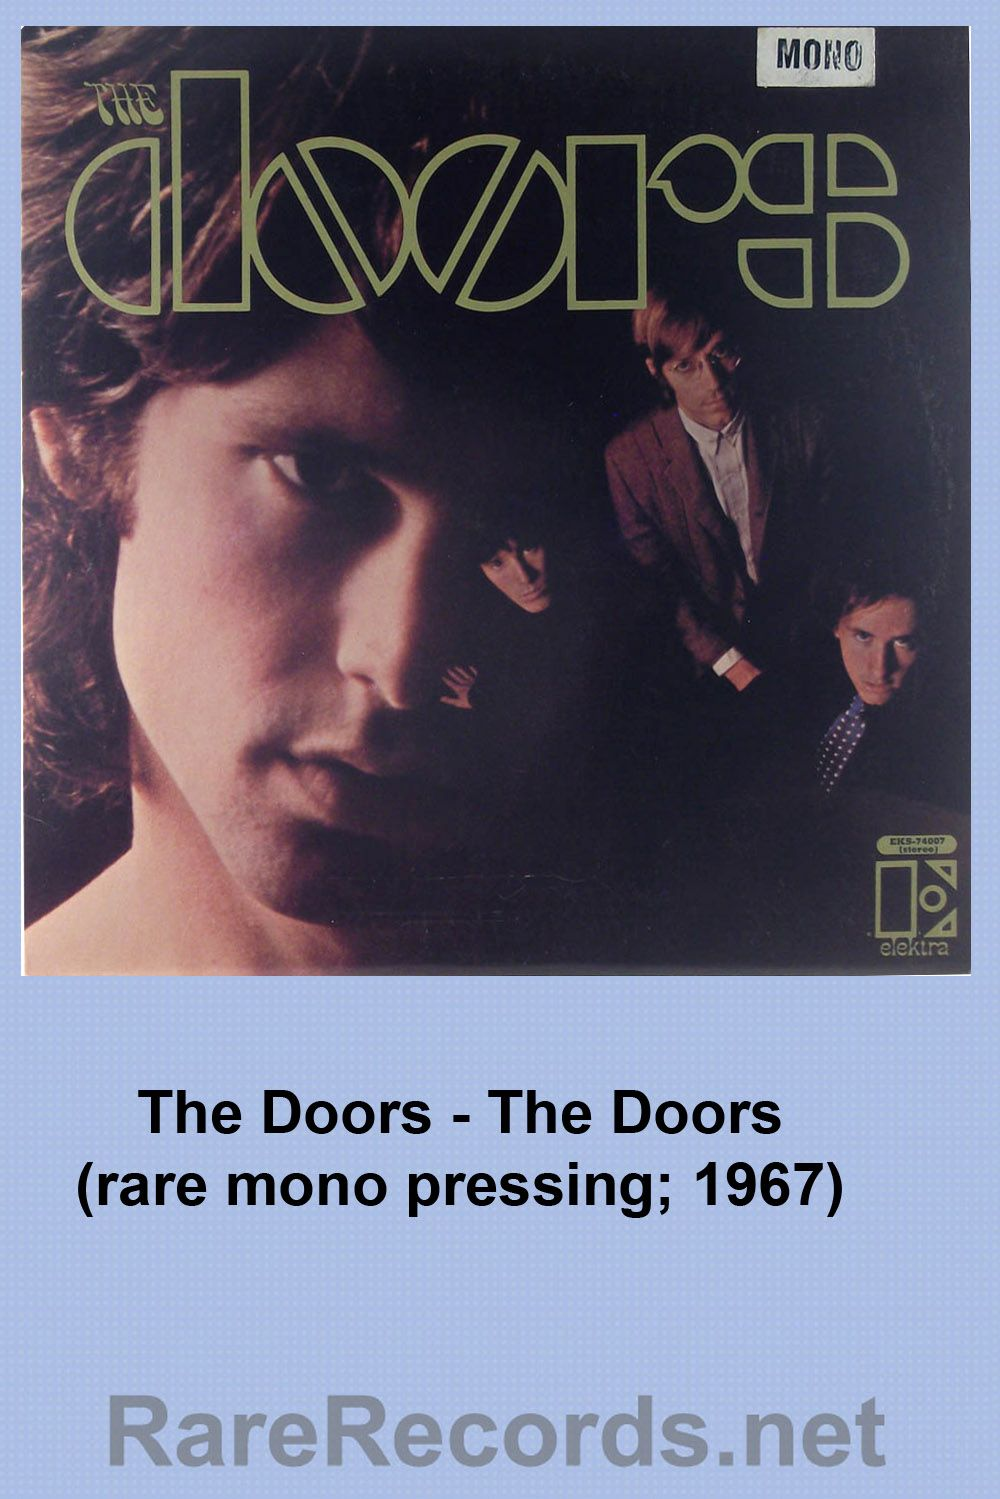 Rare Mono Pressing Of The Doors Self-titled First Album. Released In 1967 The Mono Pressing Was Only Available For About A Year And Has A Significantly .  sc 1 st  pezcame.com & Doors 1967 Songs u0026 Record Cover Art For Respect By Aretha Franklin ...